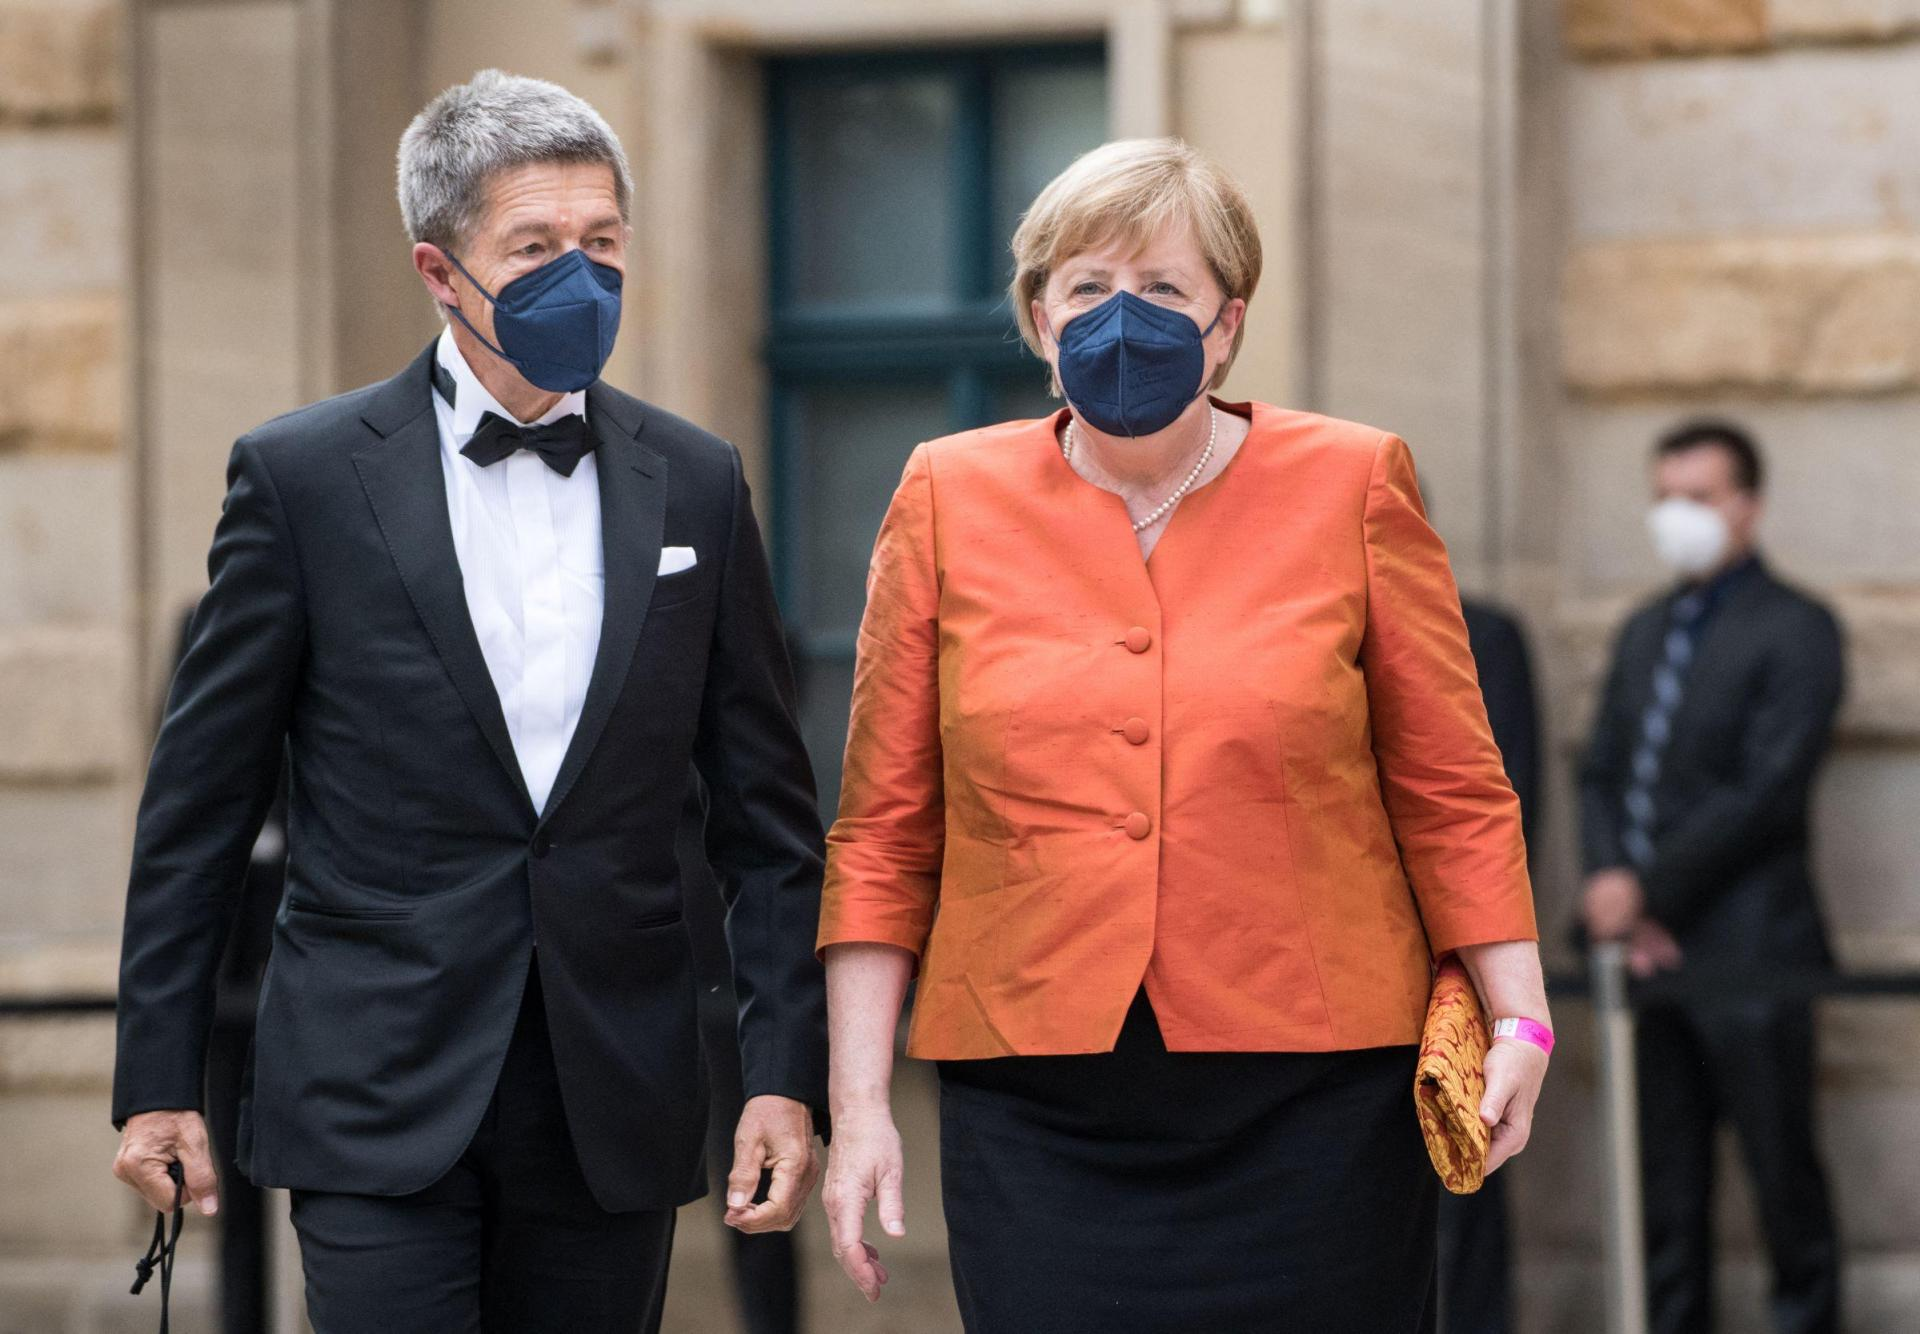 German Chancellor Angela Merkel and her husband Joachim Sauer arrive for the opening ceremony of the annual Bayreuth Festival. Photo: Stefanie Loos/AFP